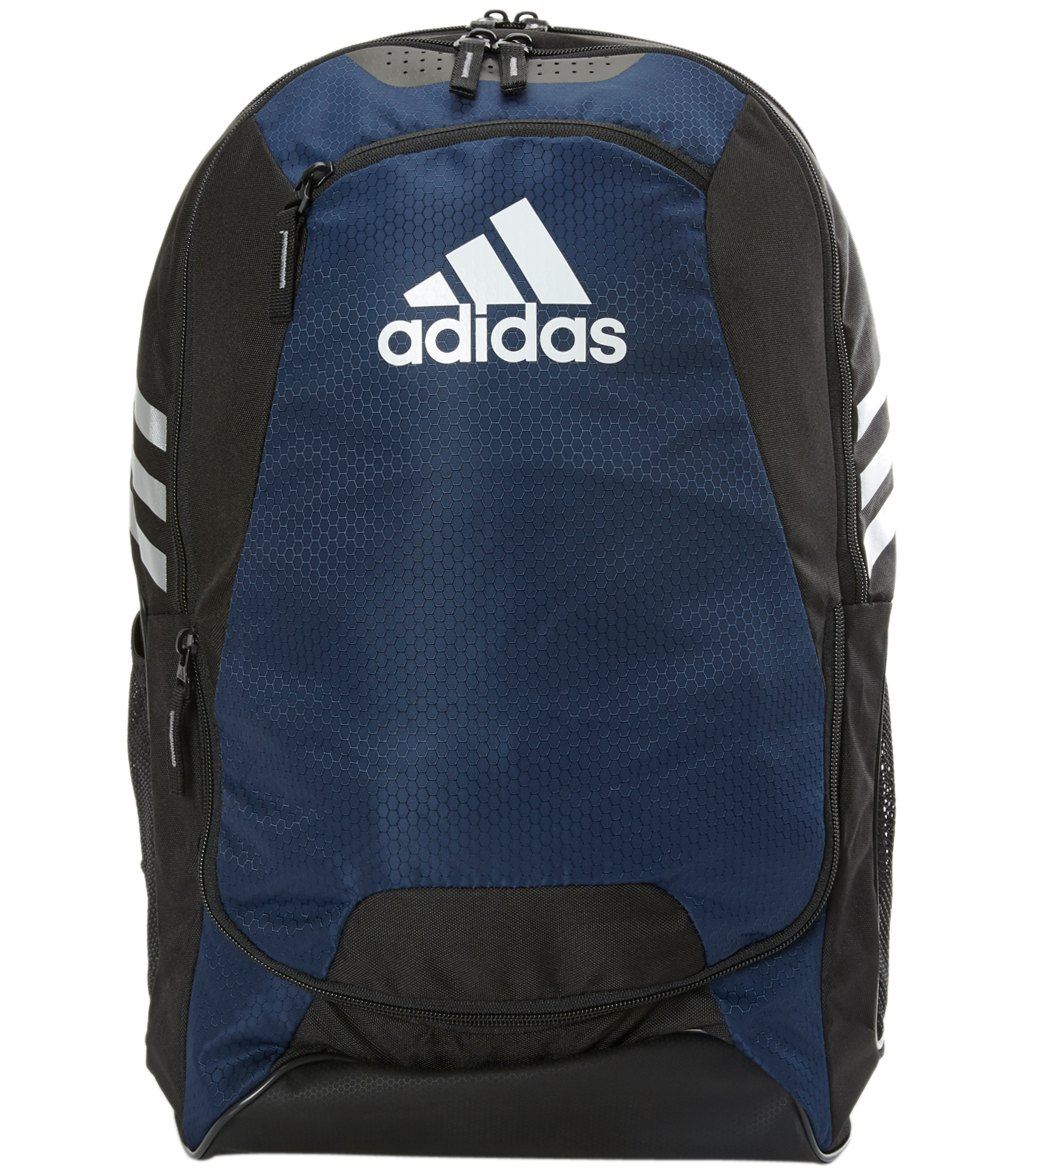 Adidas Stadium II Backpack C3000X at SwimOutlet.com - Free Shipping 27d92ade0394e